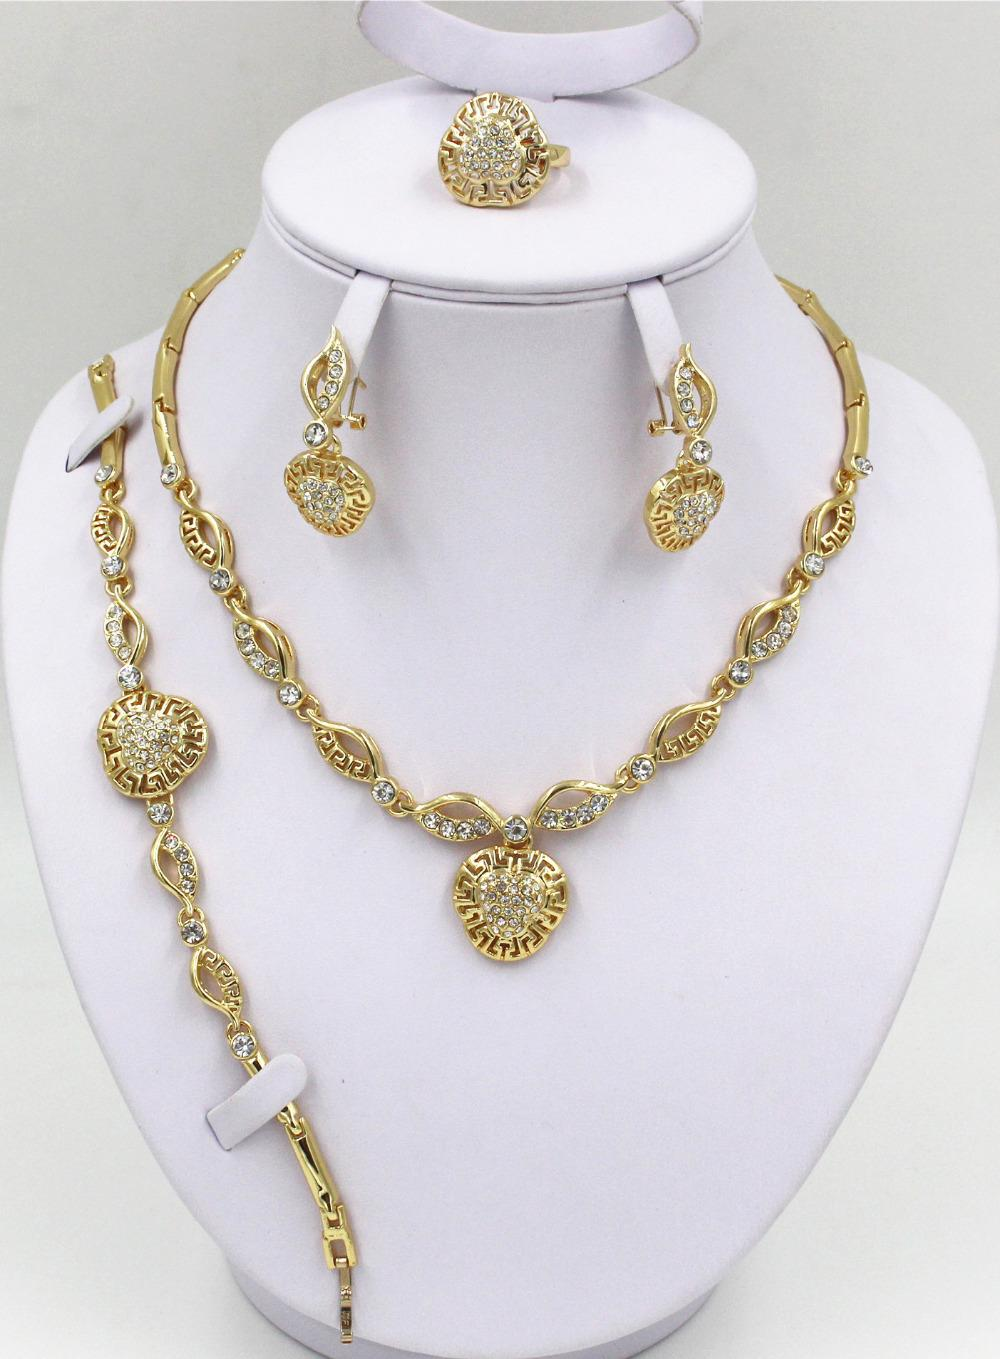 Free shipping high quality indian women 39 s fashion jewelry for Costume jewelry for evening gowns